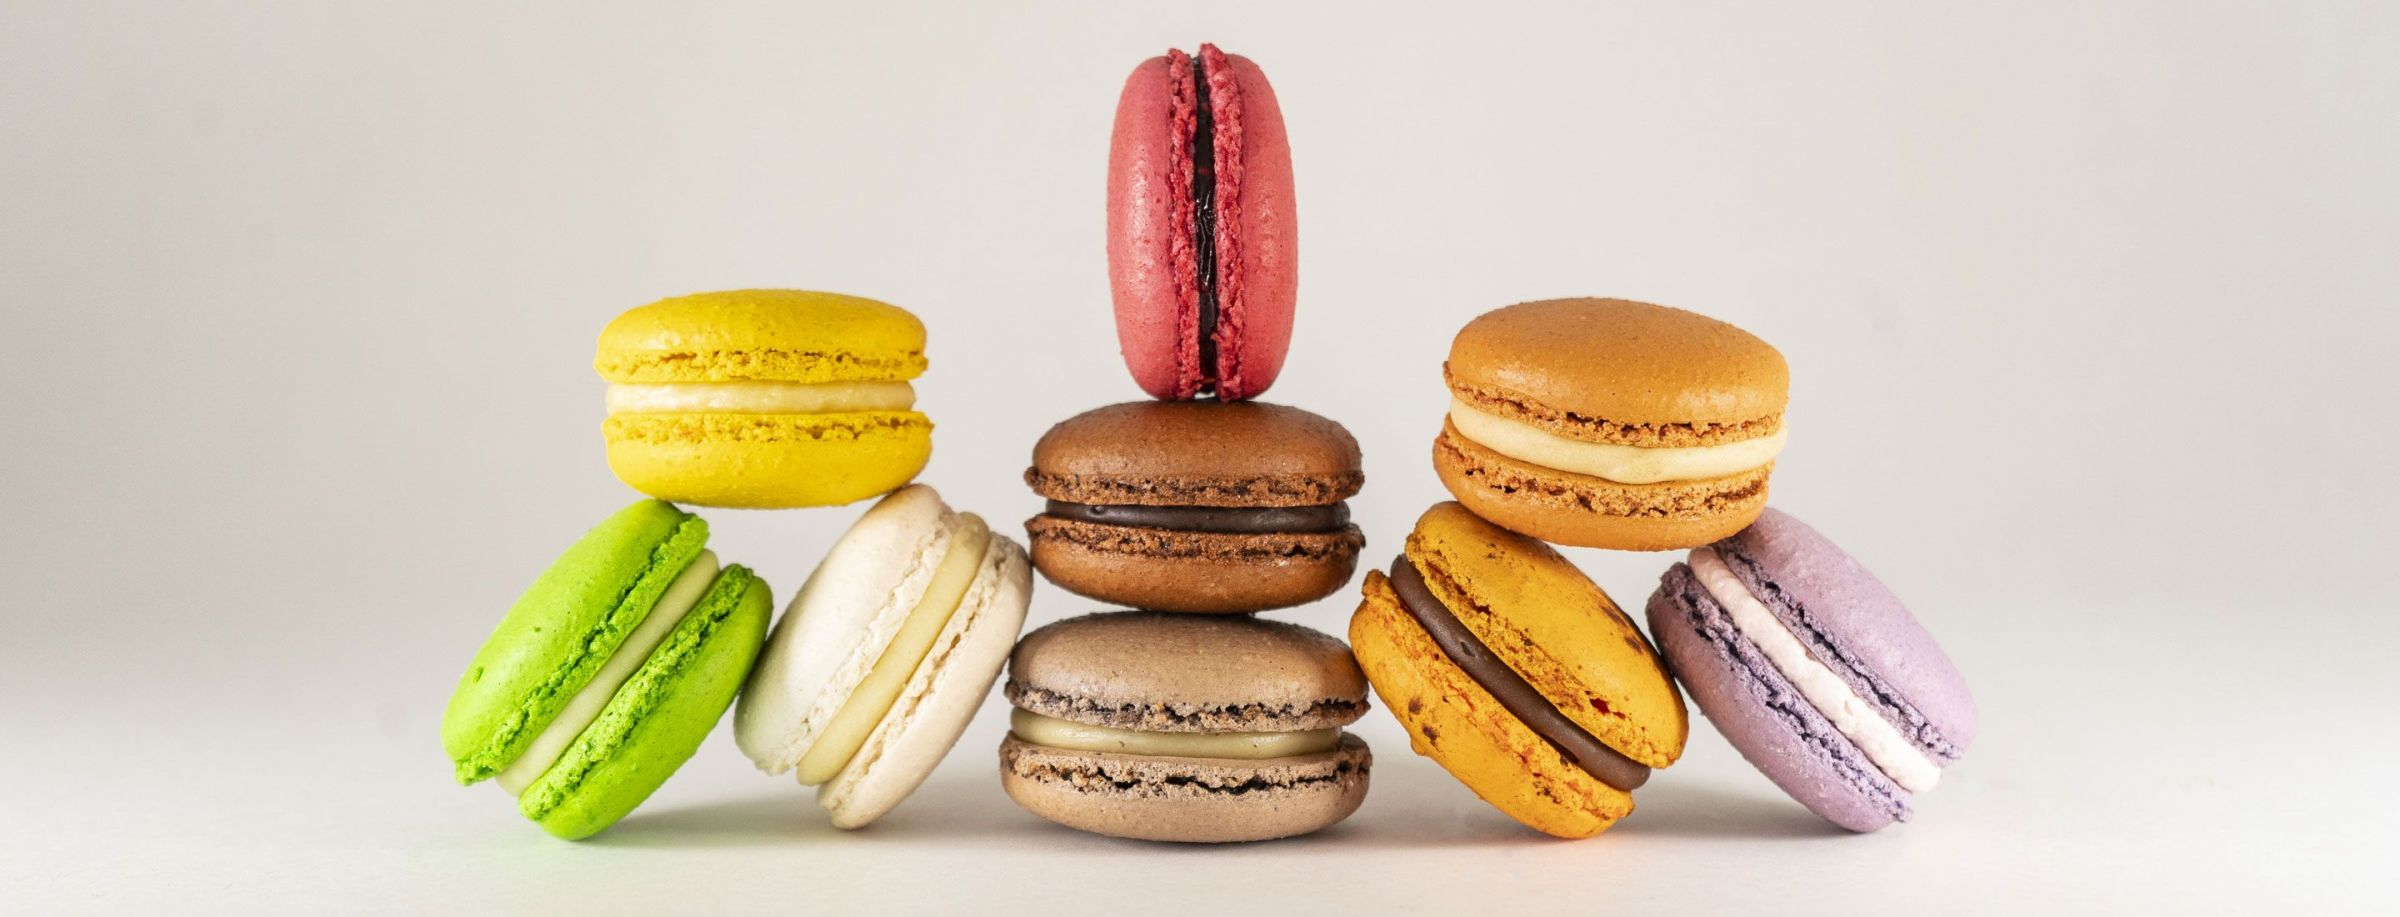 Macarons Le Vice